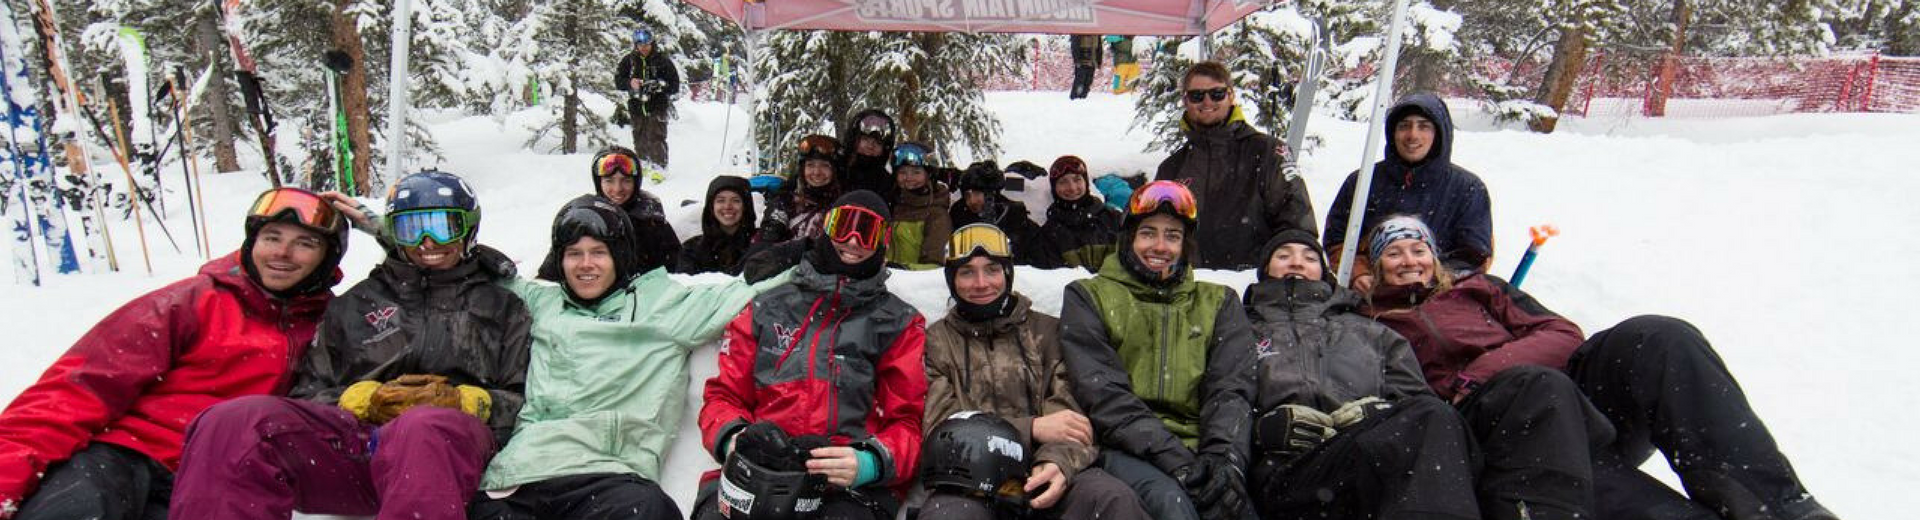 IFSA Freeride Team Directory